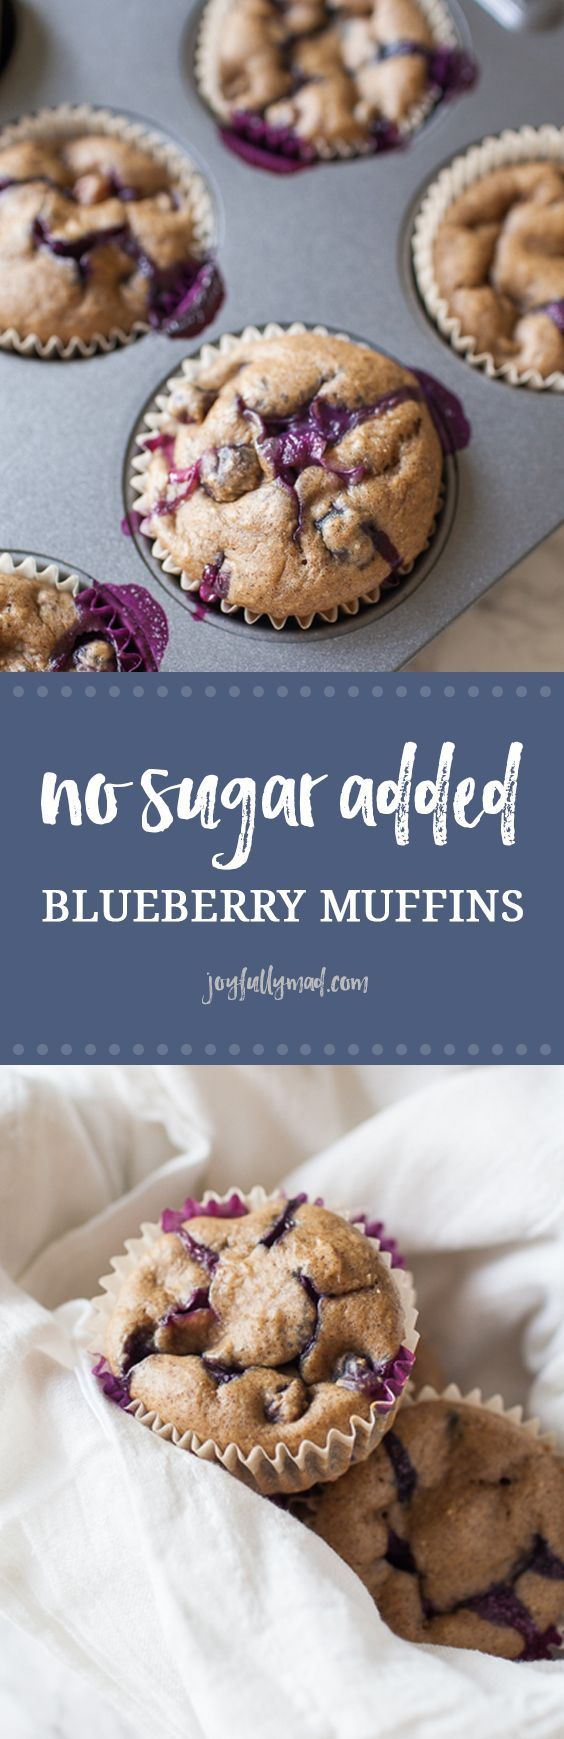 Looking for a healthy treat that can be served to adults and children alike? These healthy no sugar added blueberry muffins are the perfect treat because they are sweetened naturally with dates, inste